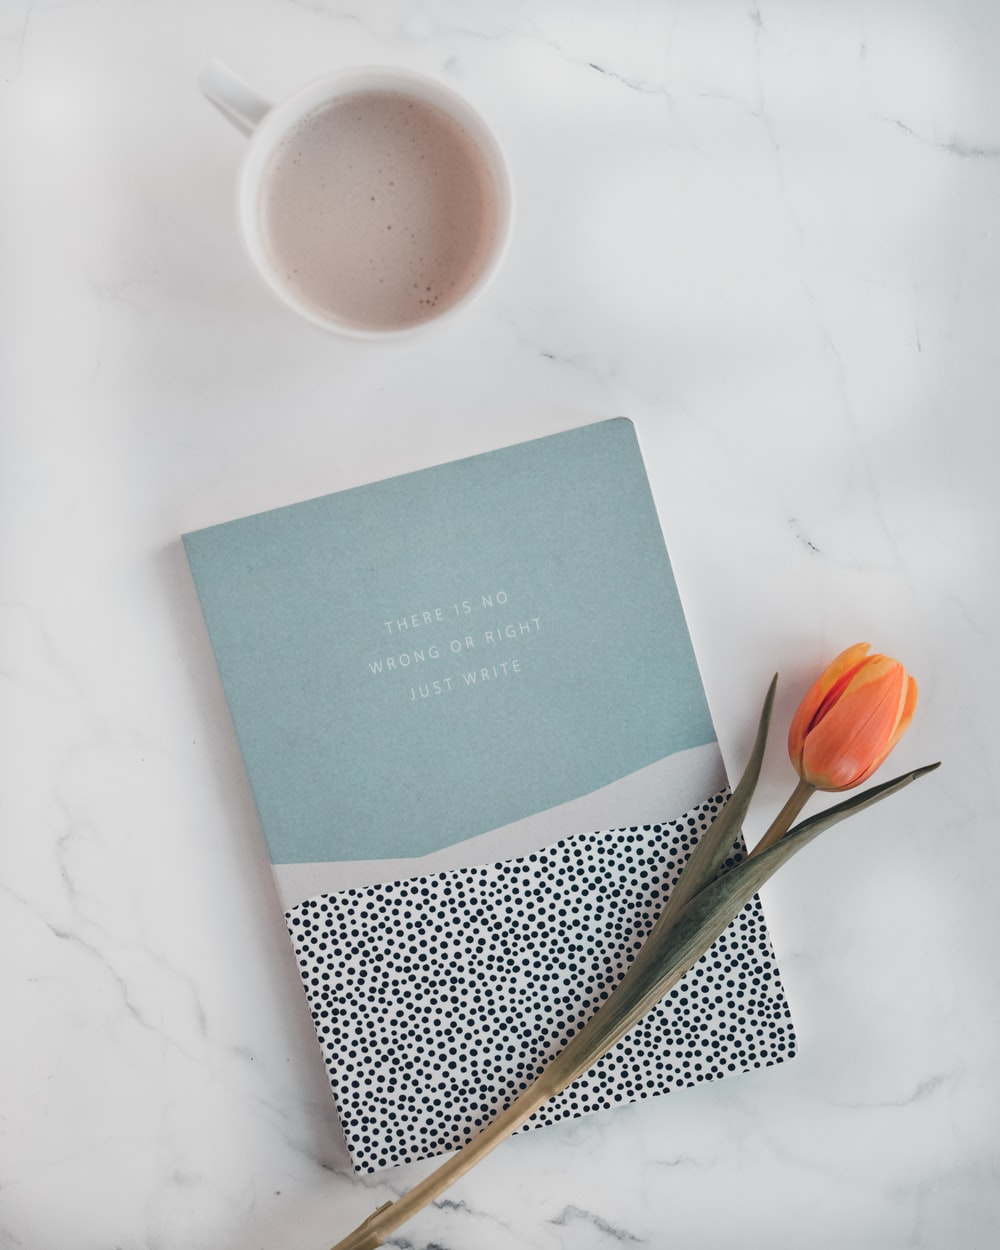 orange tulip and blue labeled book